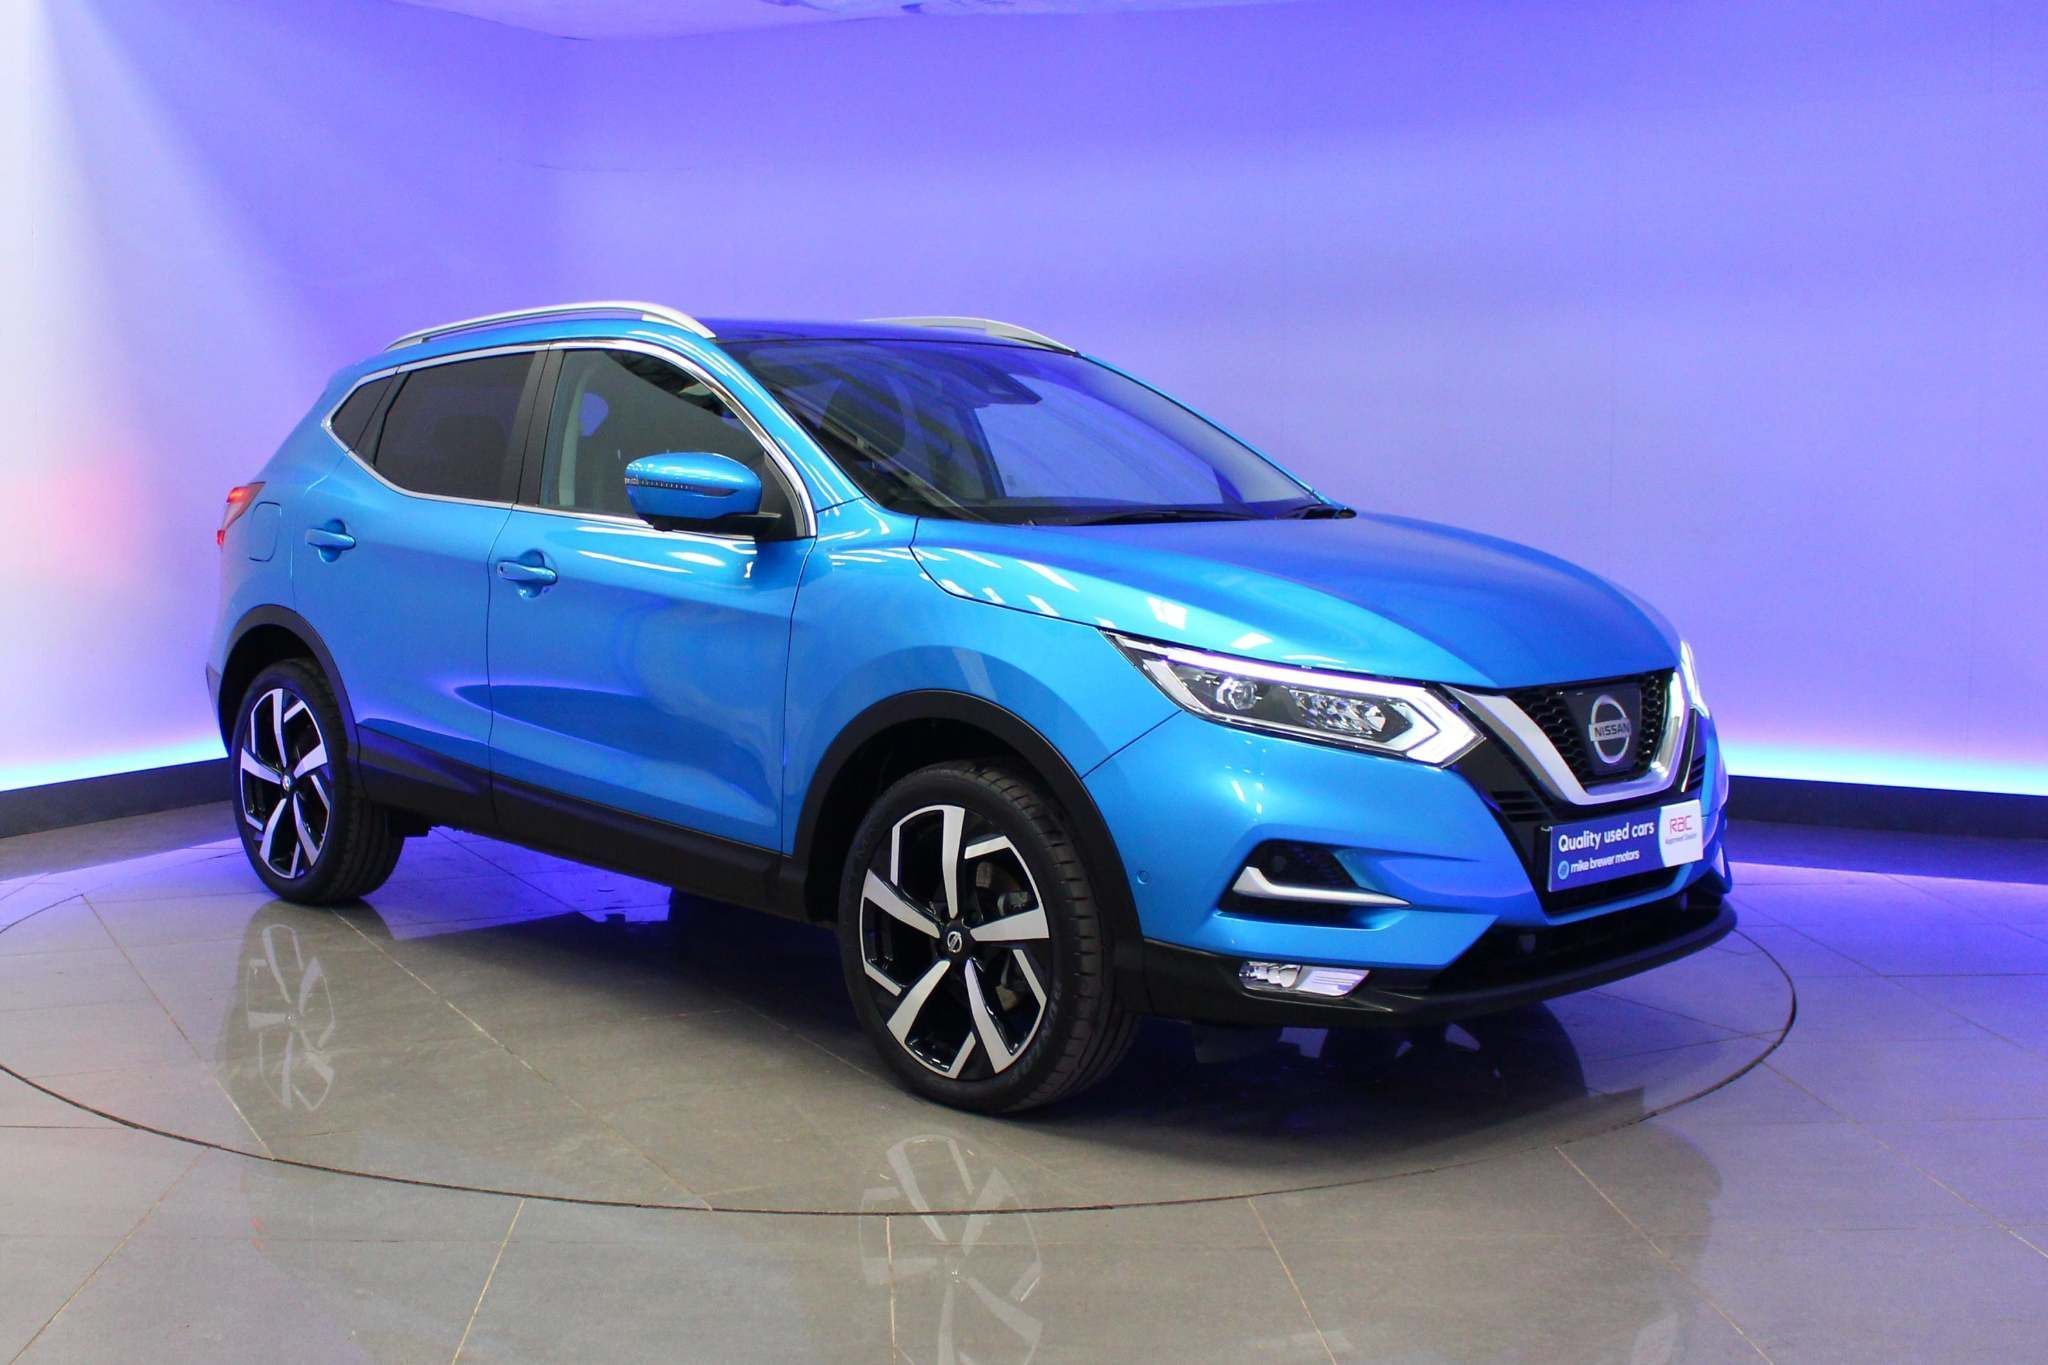 Used Nissan Qashqai 1.3 Dig-T Tekna (s/s) 5dr